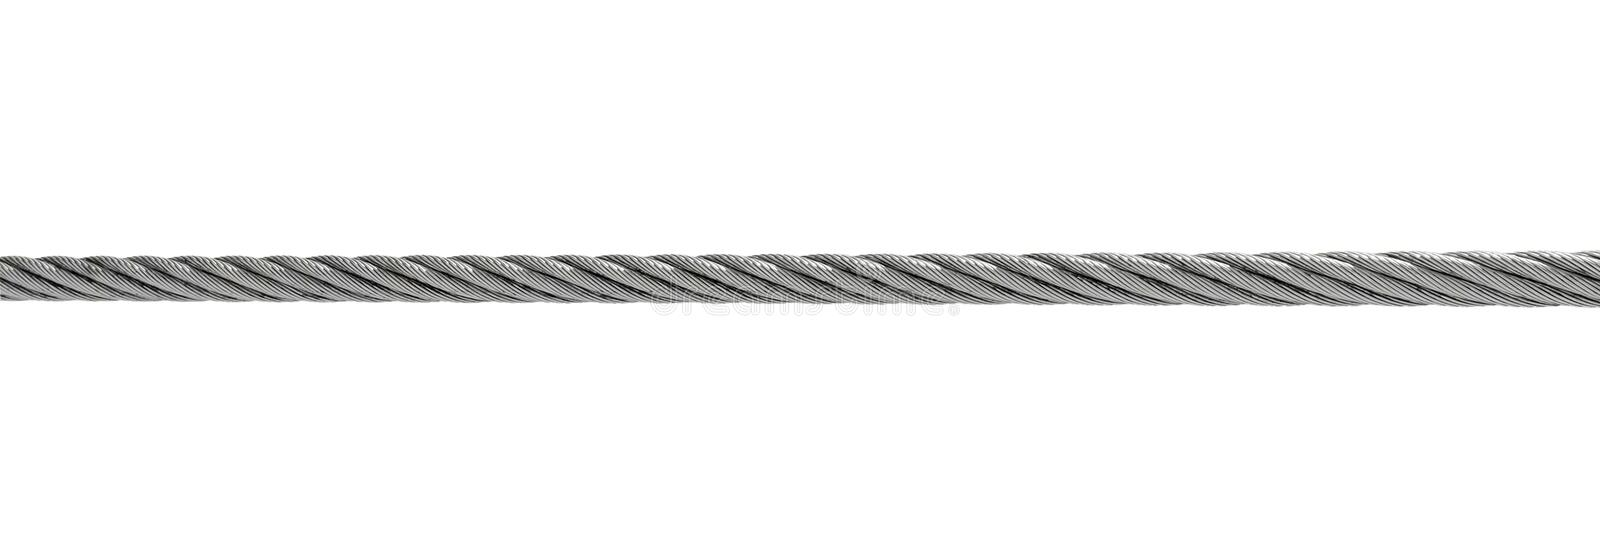 Steel cable isolated on white royalty free stock photography